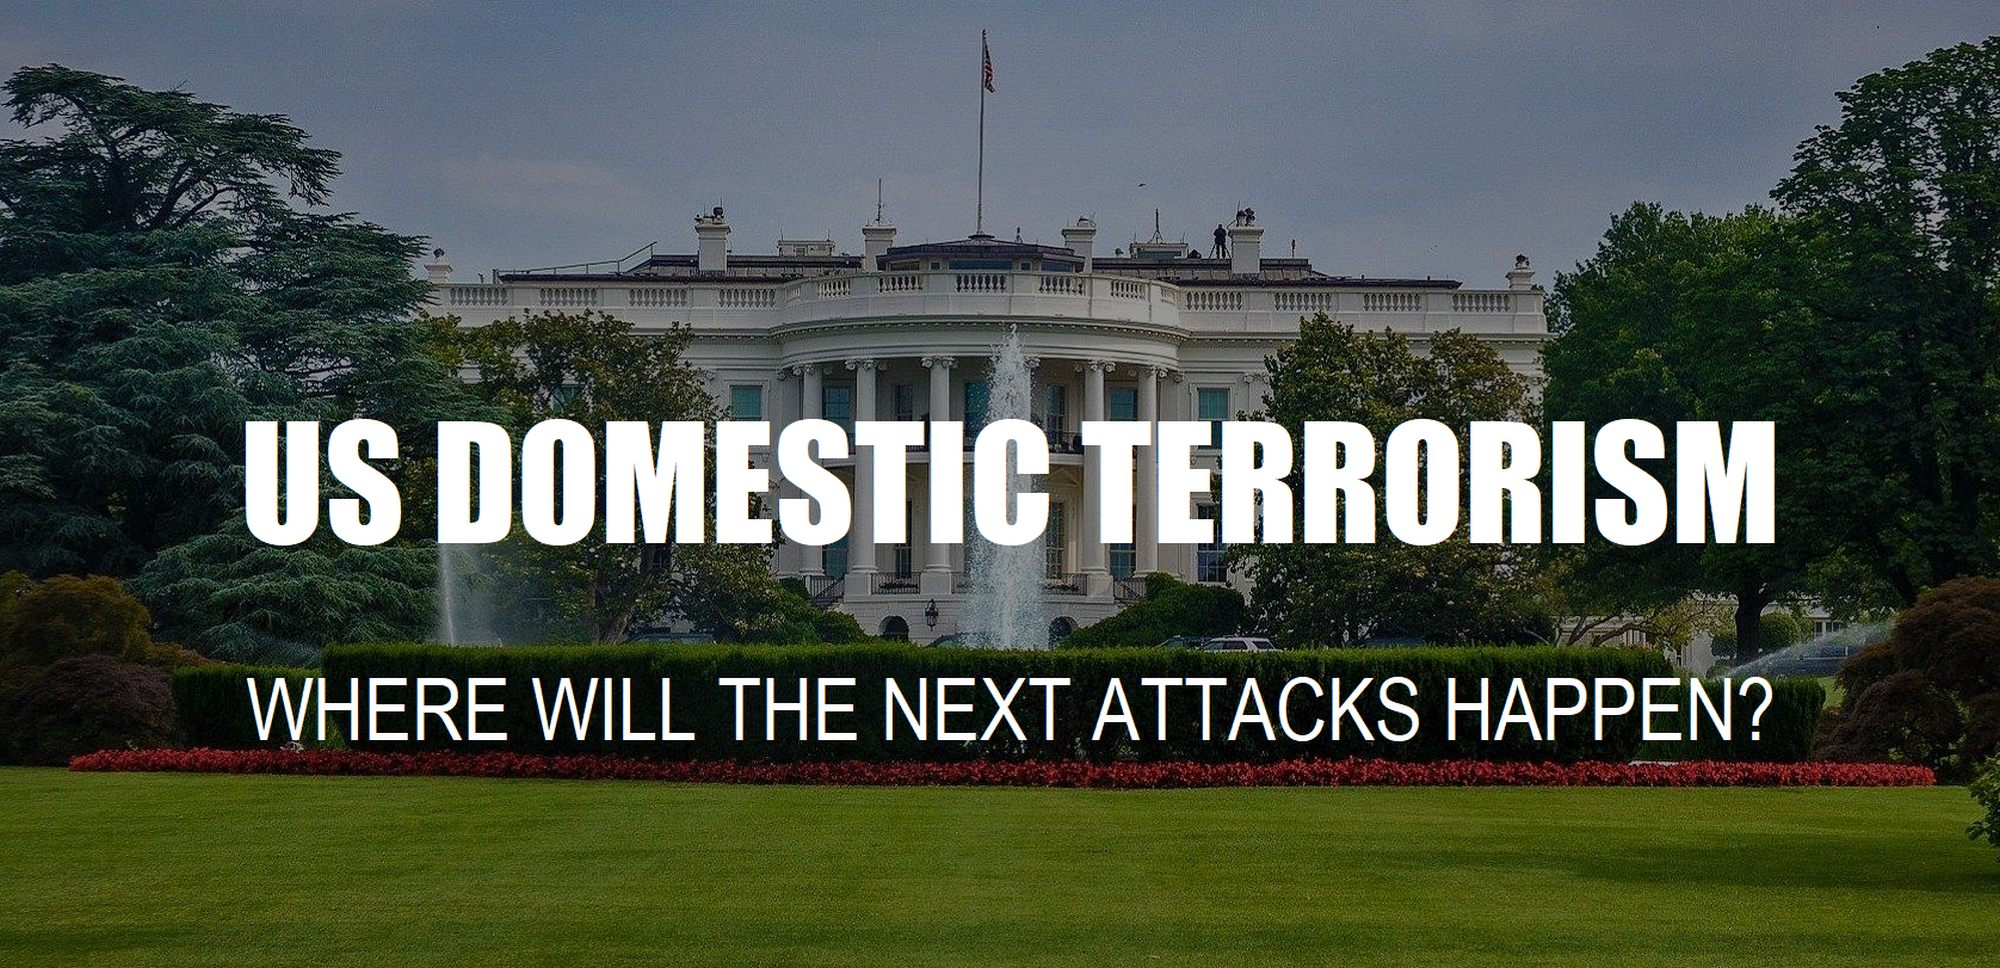 us-homegrown-terror-where-are-far-right-domestic-us-terrorism-attacks-going-to-happen-next-place